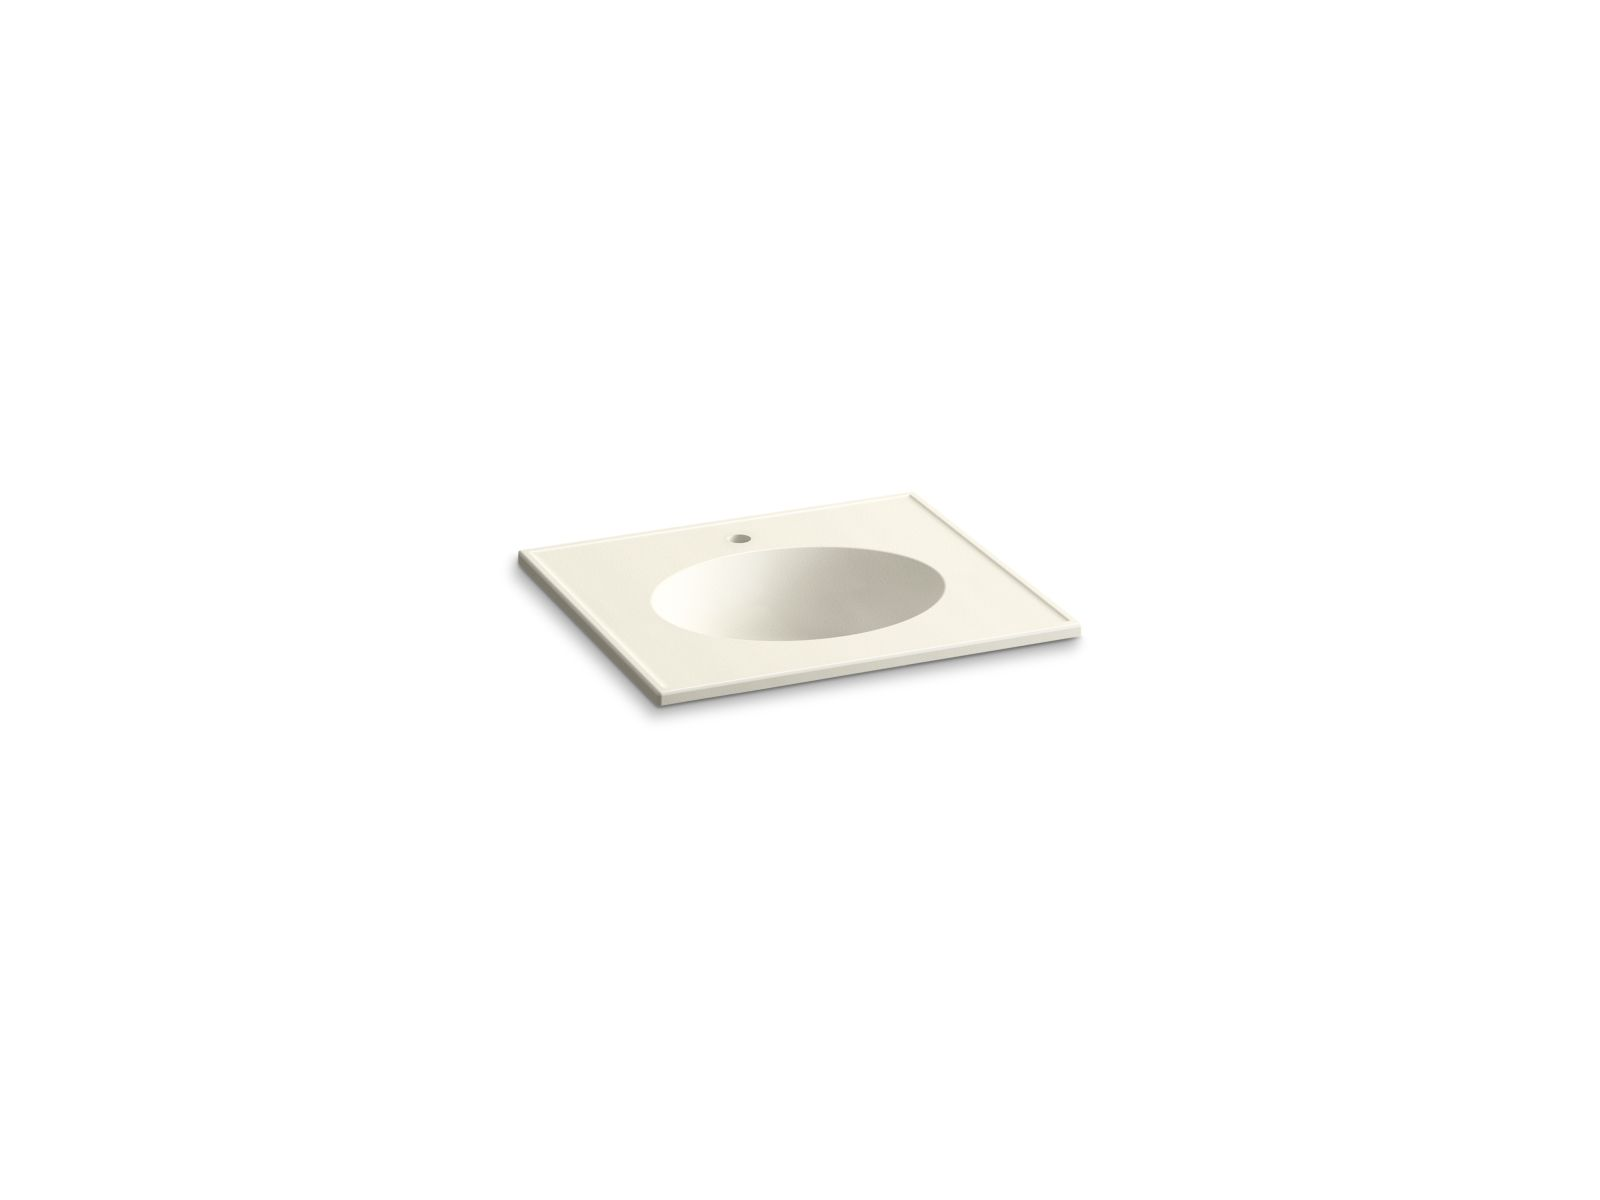 "Kohler Ceramic/Impressions™ K-2791-1-G83 25"" oval vanity-top bathroom sink with single faucet hole Biscuit Impressions"